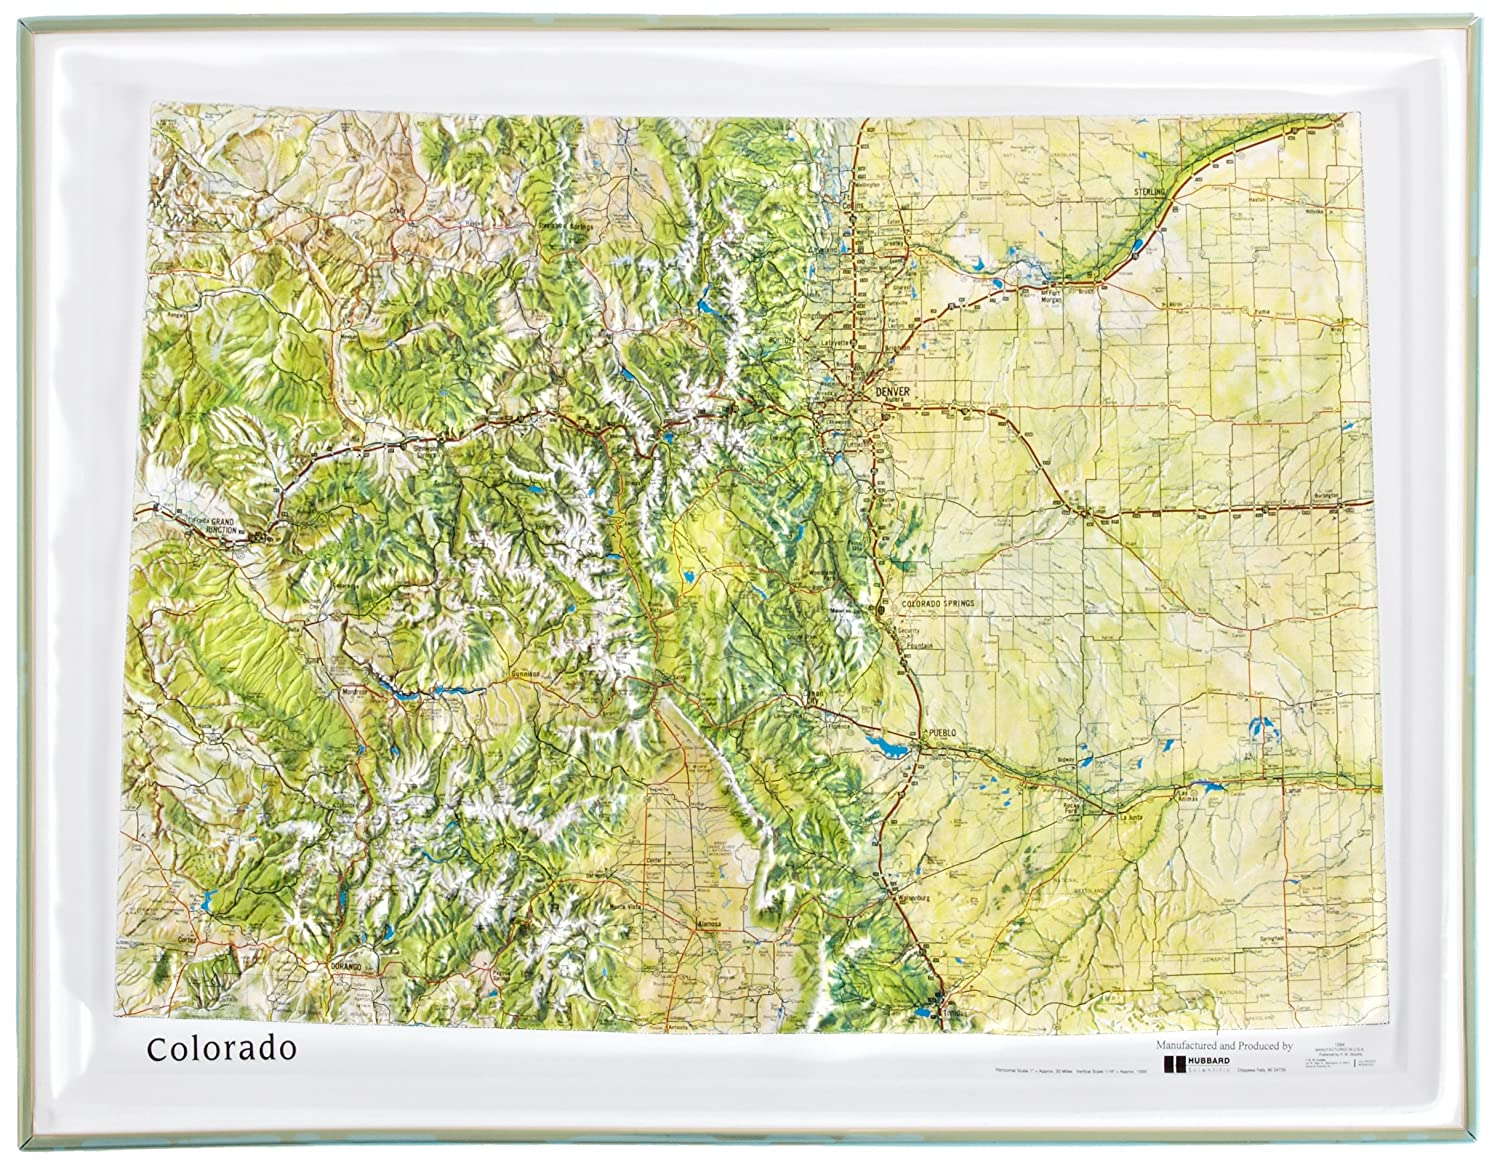 American Educational Colorado Natural Color Relief Map with Gold Plastic Frame, 17-1/2' Length x 22-1/2' Width 17-1/2 Length x 22-1/2 Width K-CO2217-FG